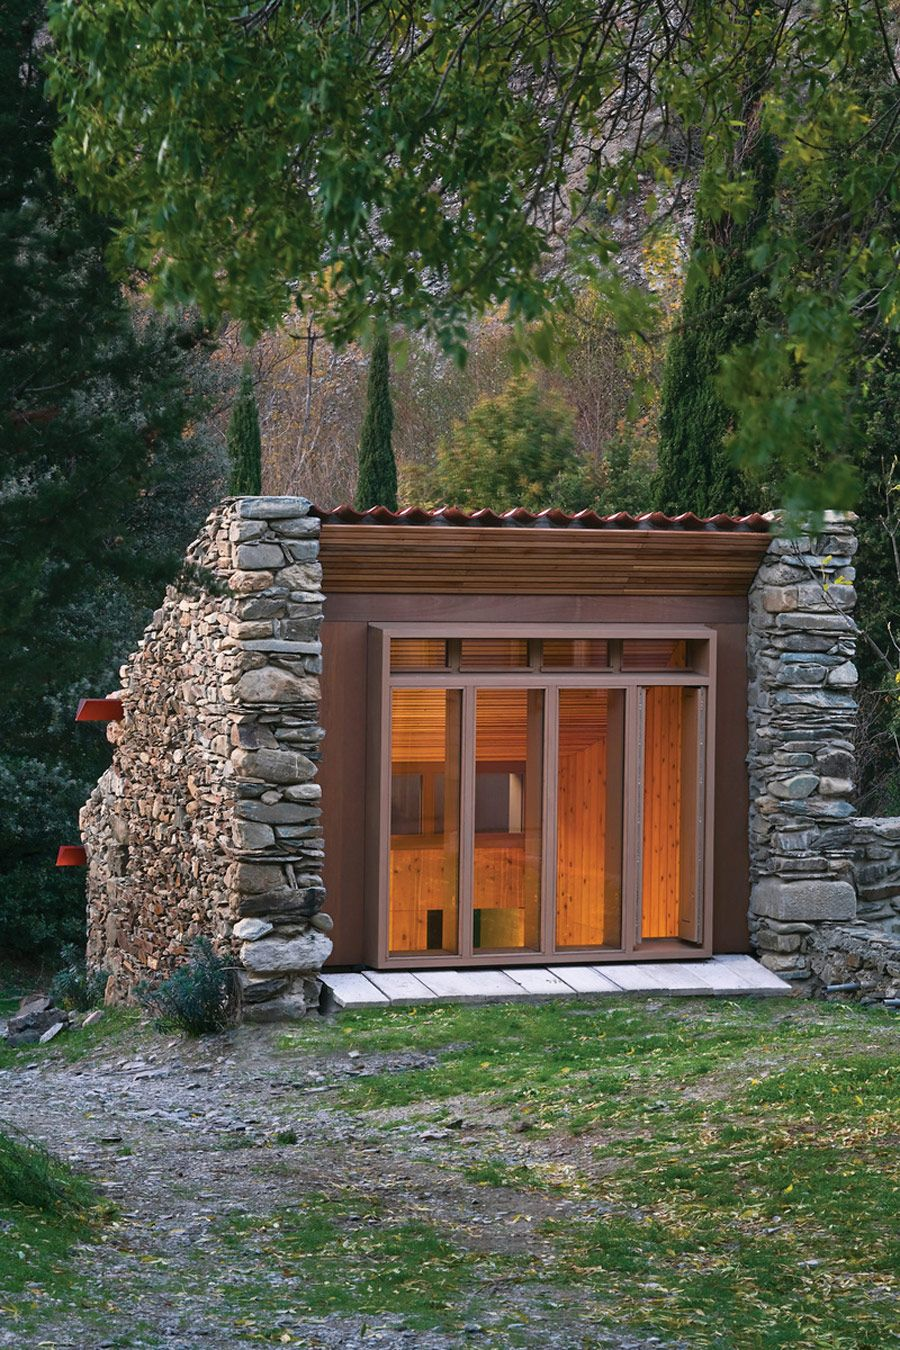 Tiny houses on stilts - 192 Best Tiny Houses Images On Pinterest Small Houses Tiny House Swoon And Tiny Houses